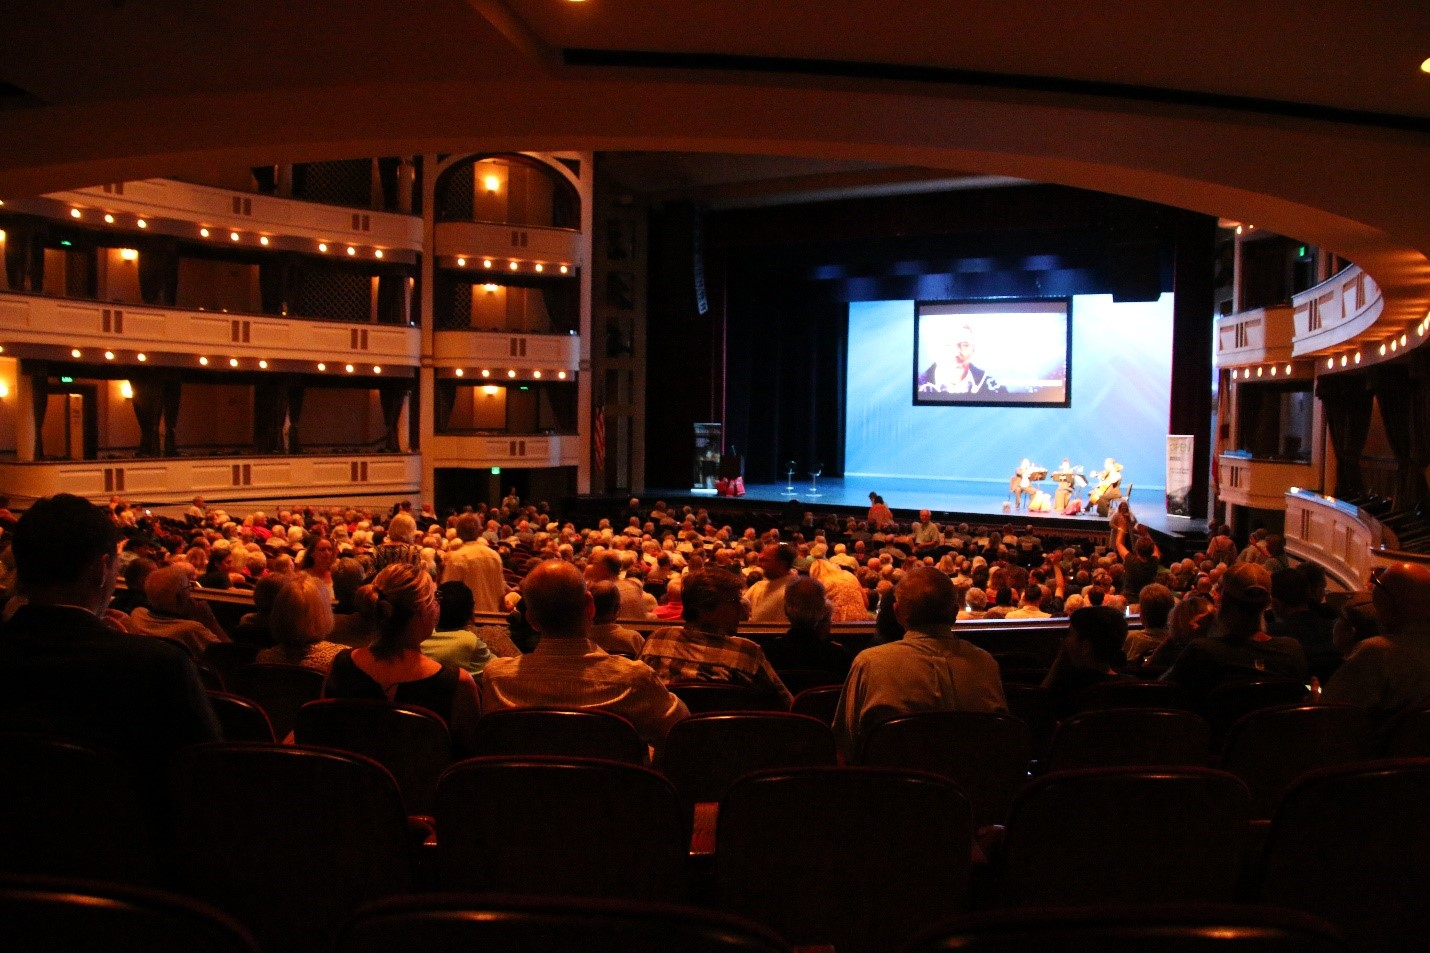 The crowd continues pouring into the Mahaffey Theater just before the start of the event.